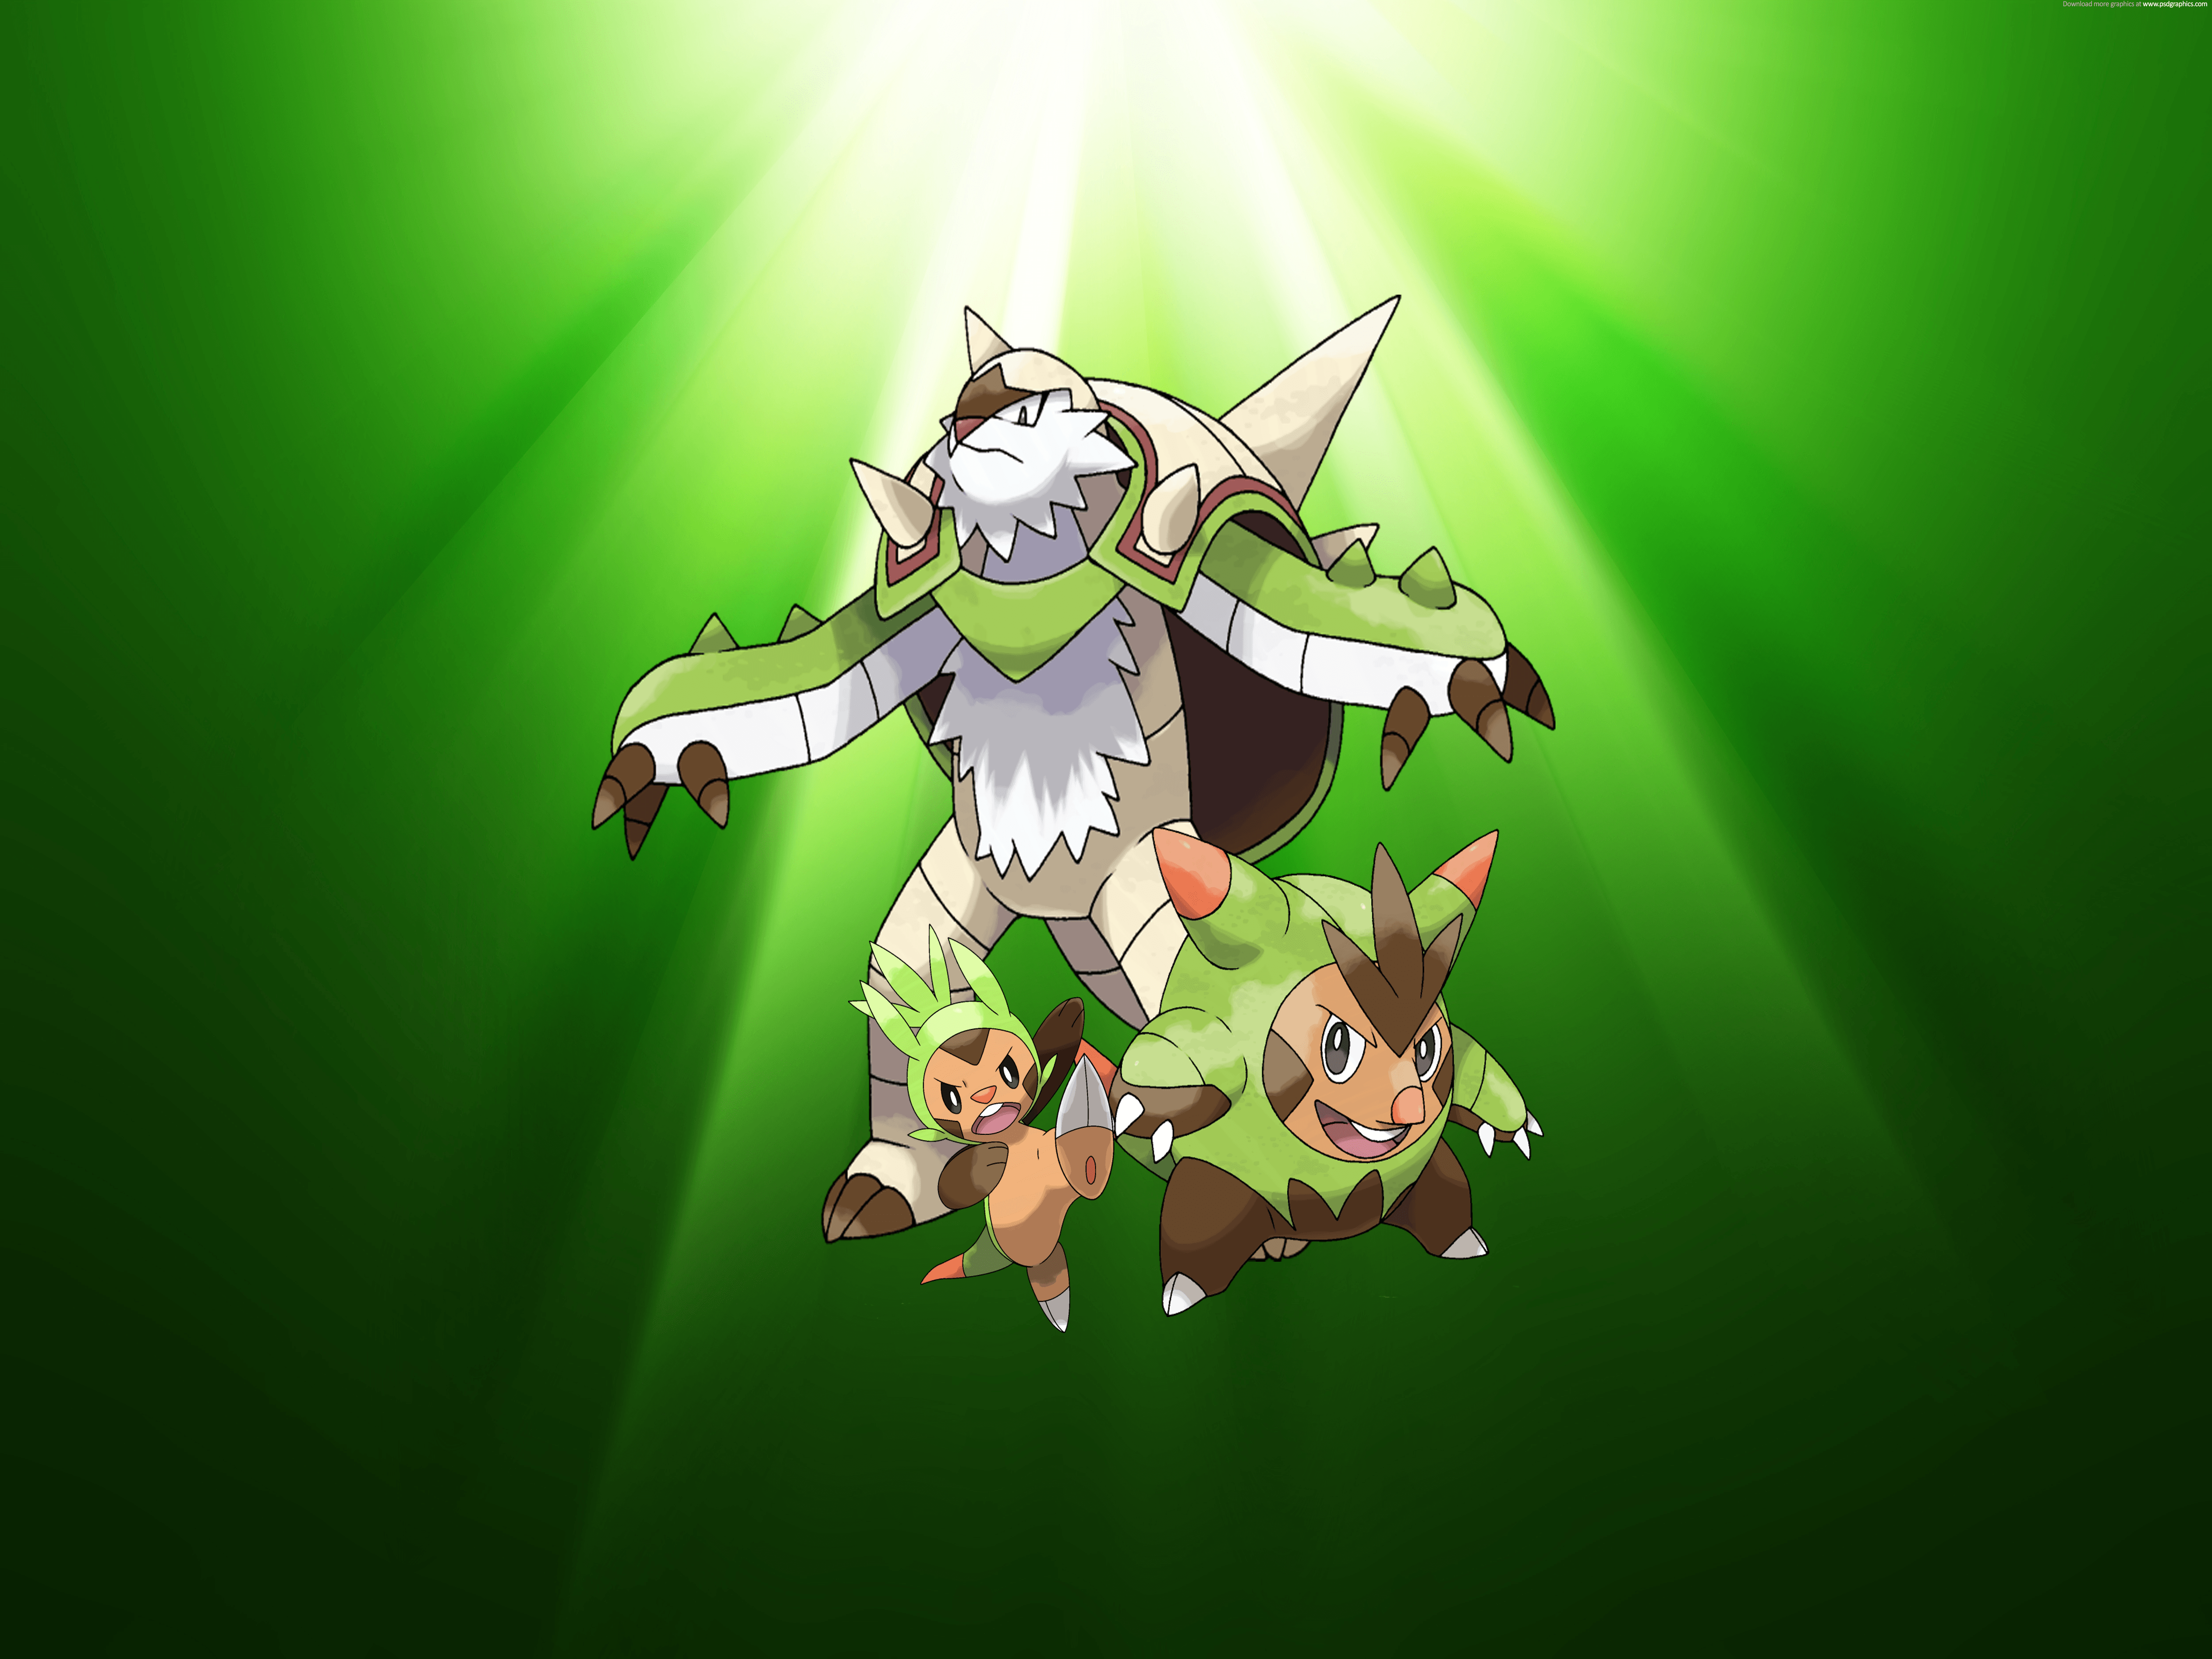 Chespin Evolution wallpaper by XxNinja-PikachaoxX on DeviantArt